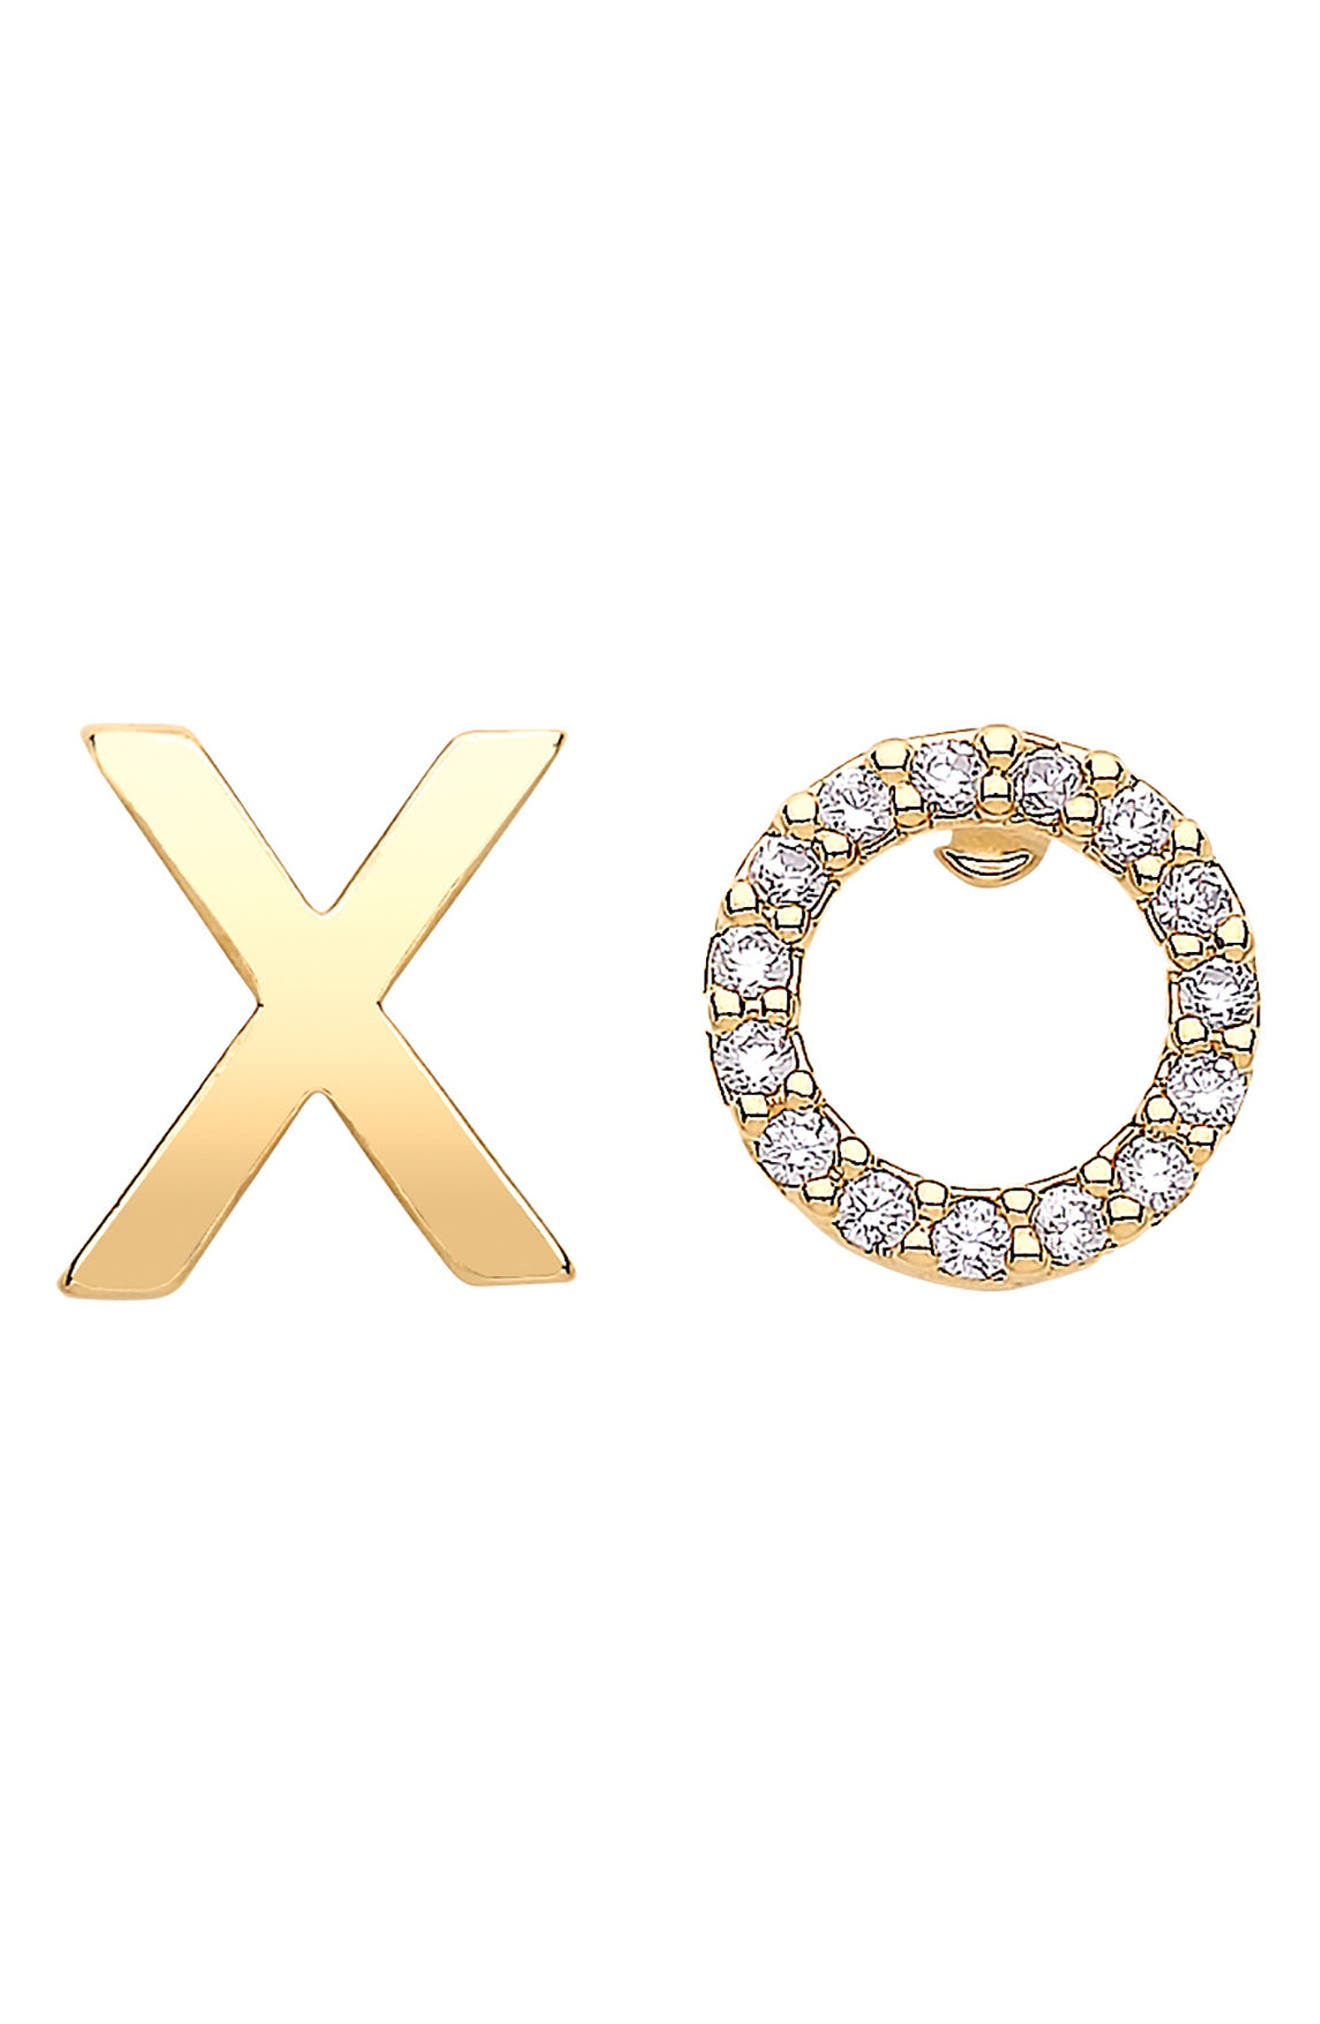 XO Stud Earrings,                         Main,                         color, 710